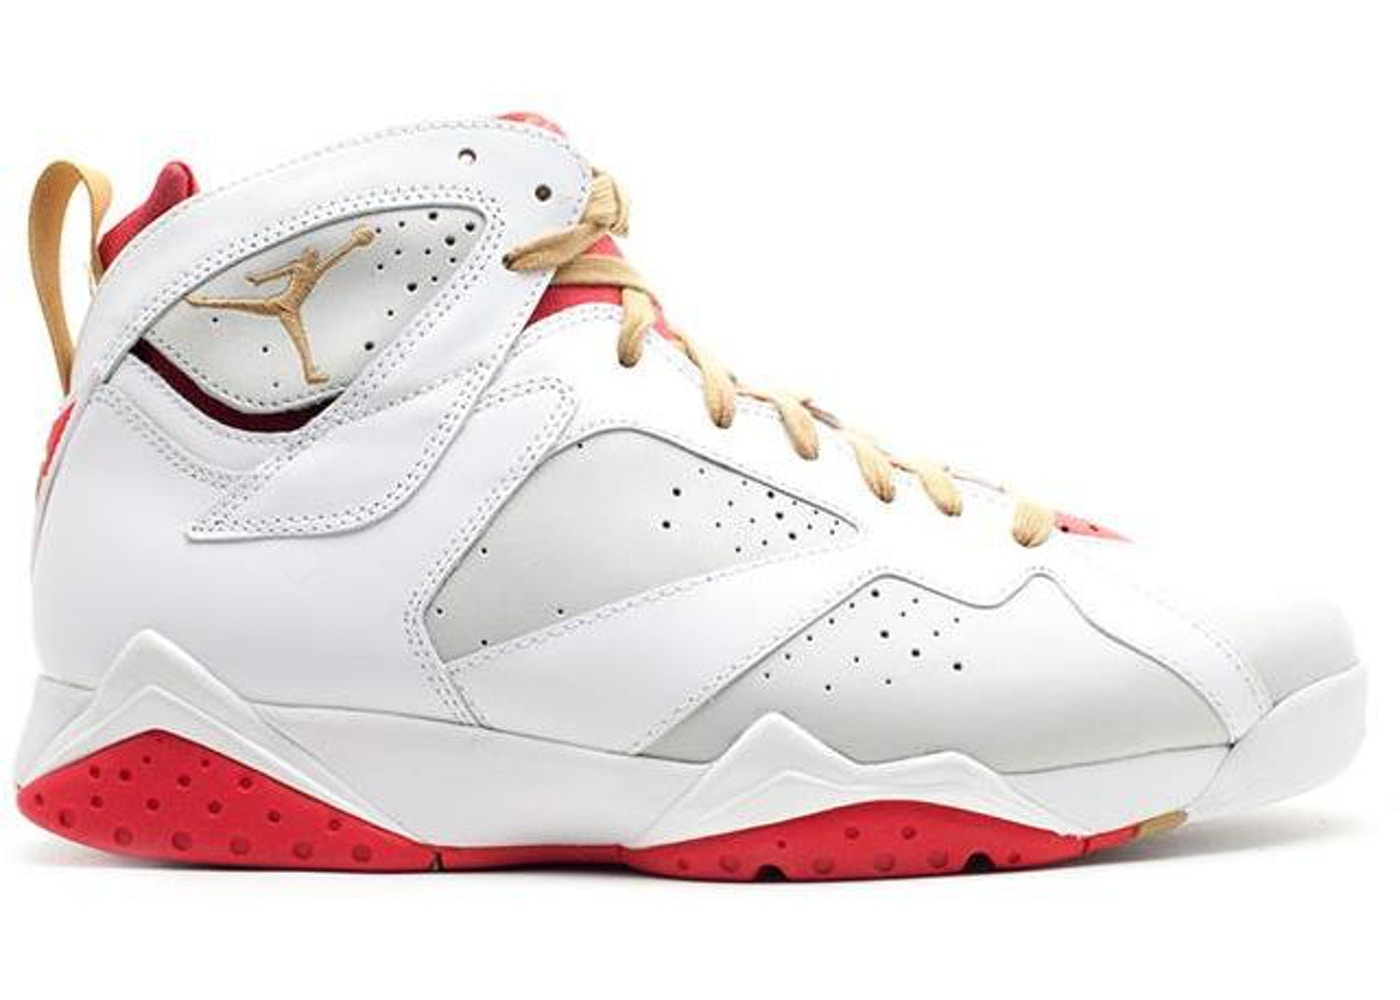 8dab798bb4ae46 Air Jordan 7 Shoes - Average Sale Price